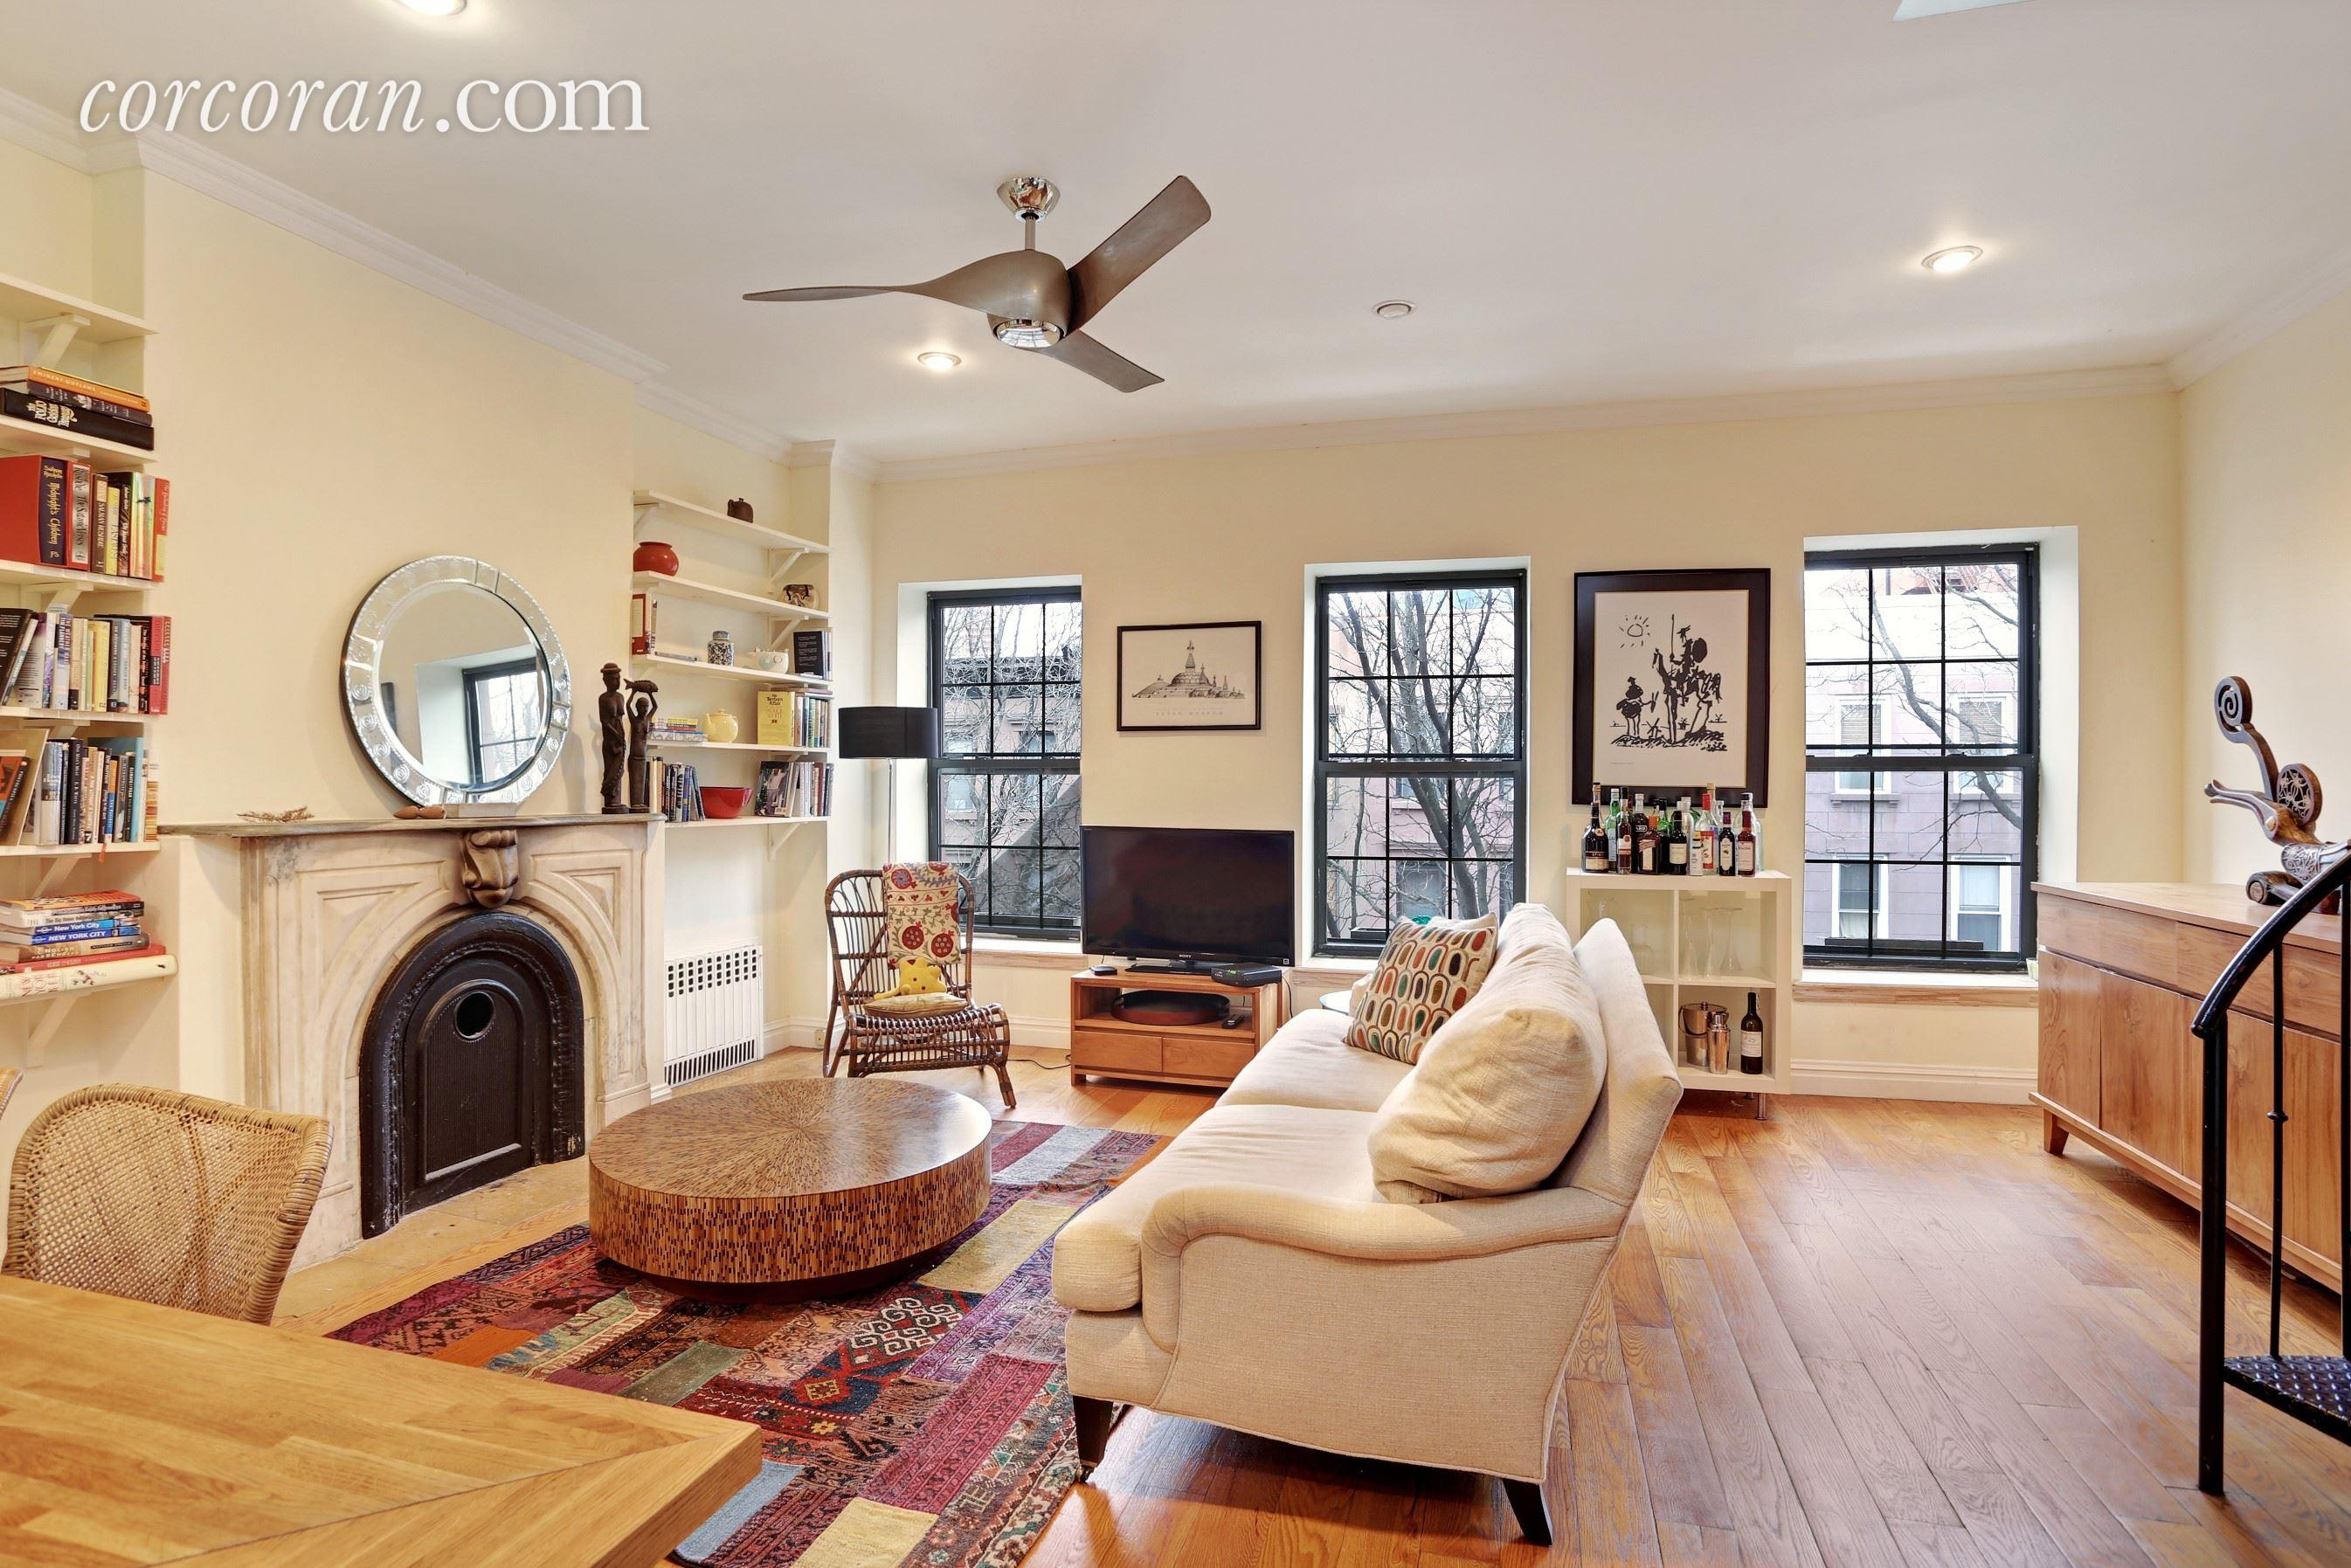 park slope duplex with spiral staircase and private roof deck asks